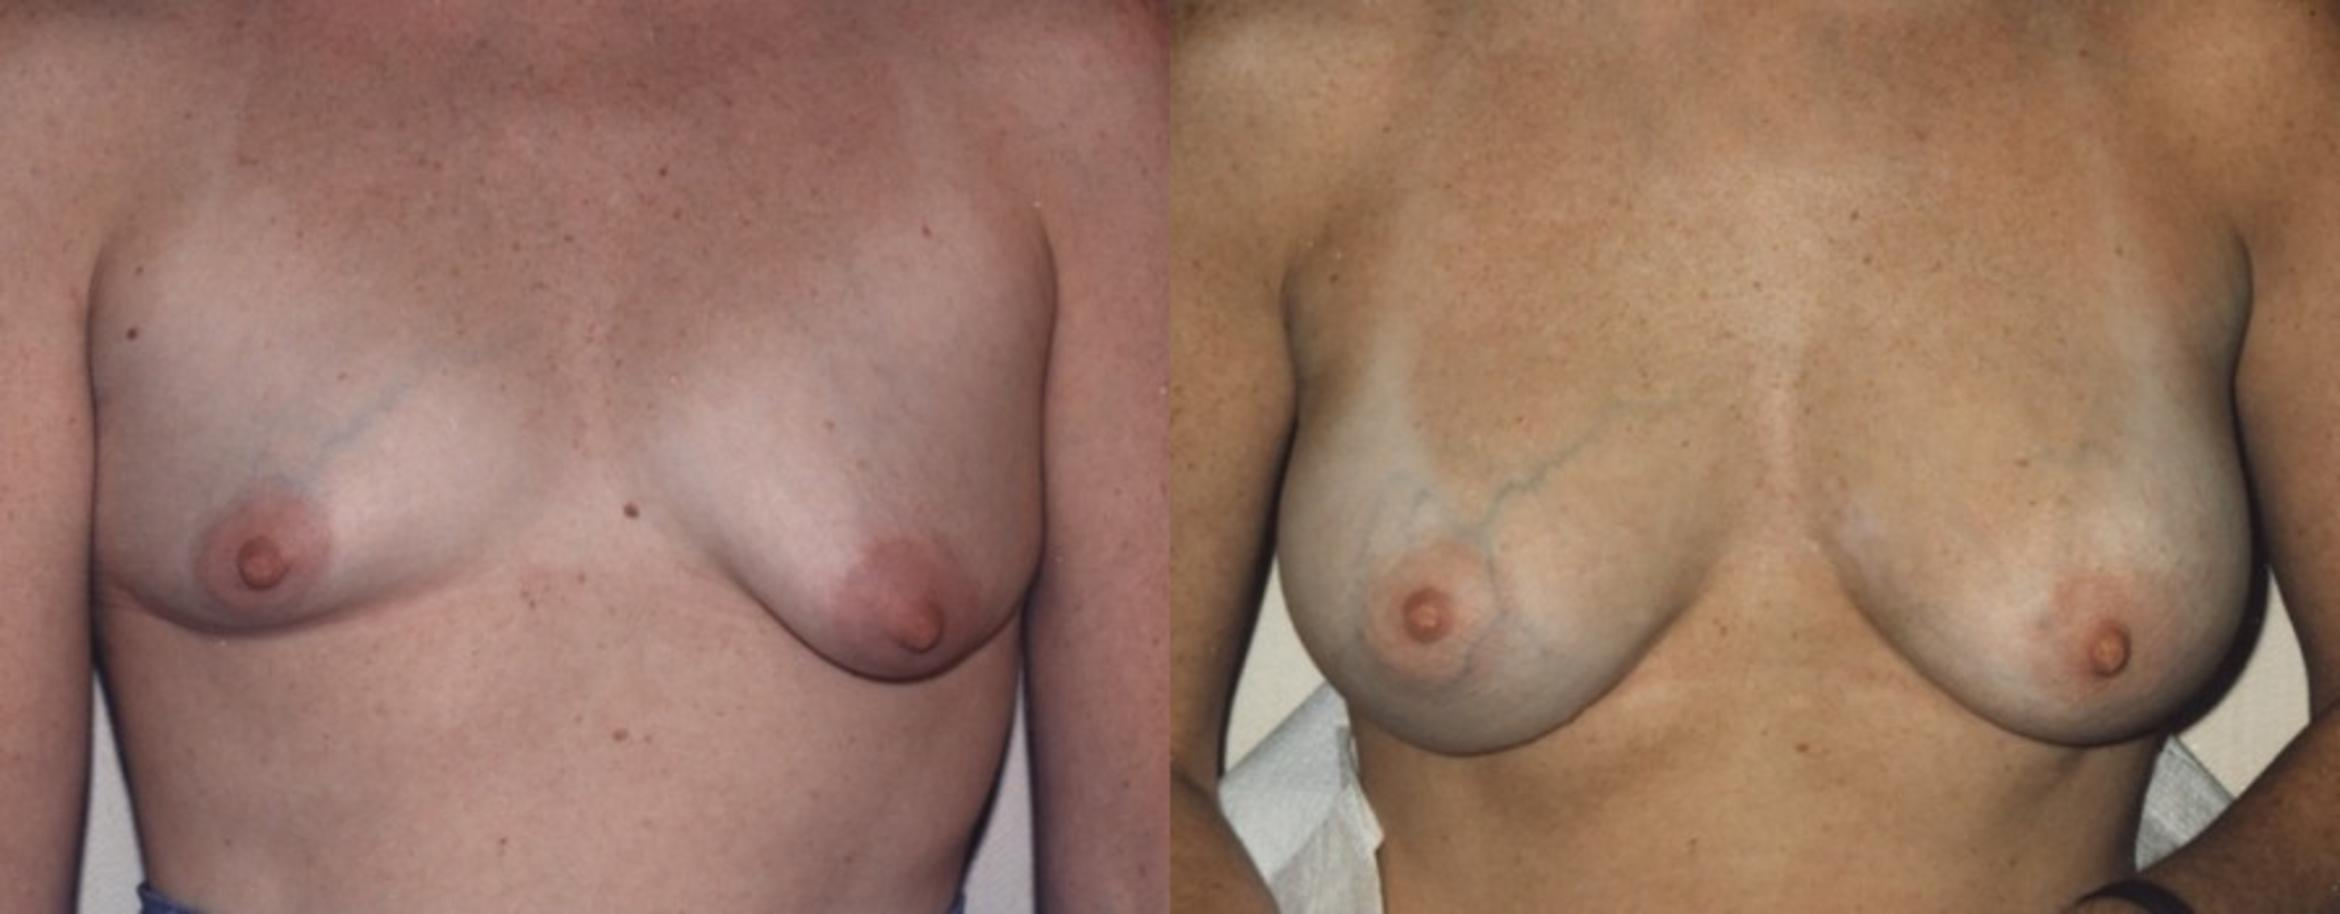 Breast Augmentation Before & After Photo | Jersey City, New Jersey | The Derm Group